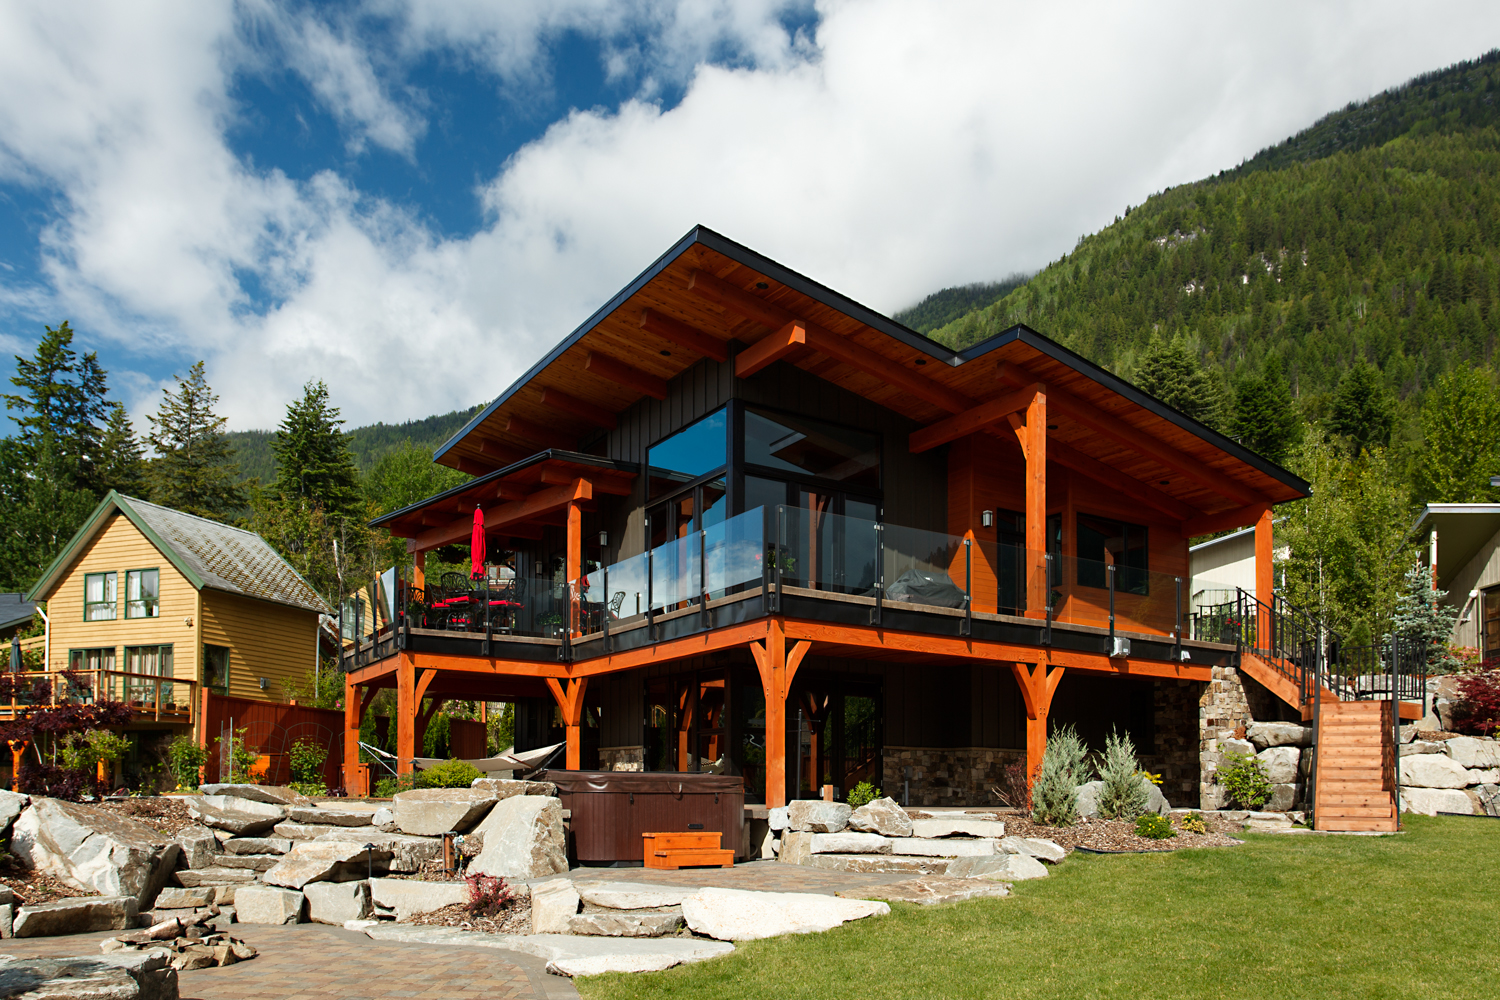 GREEN STYLE - ECO-FRIENDLY IN BC